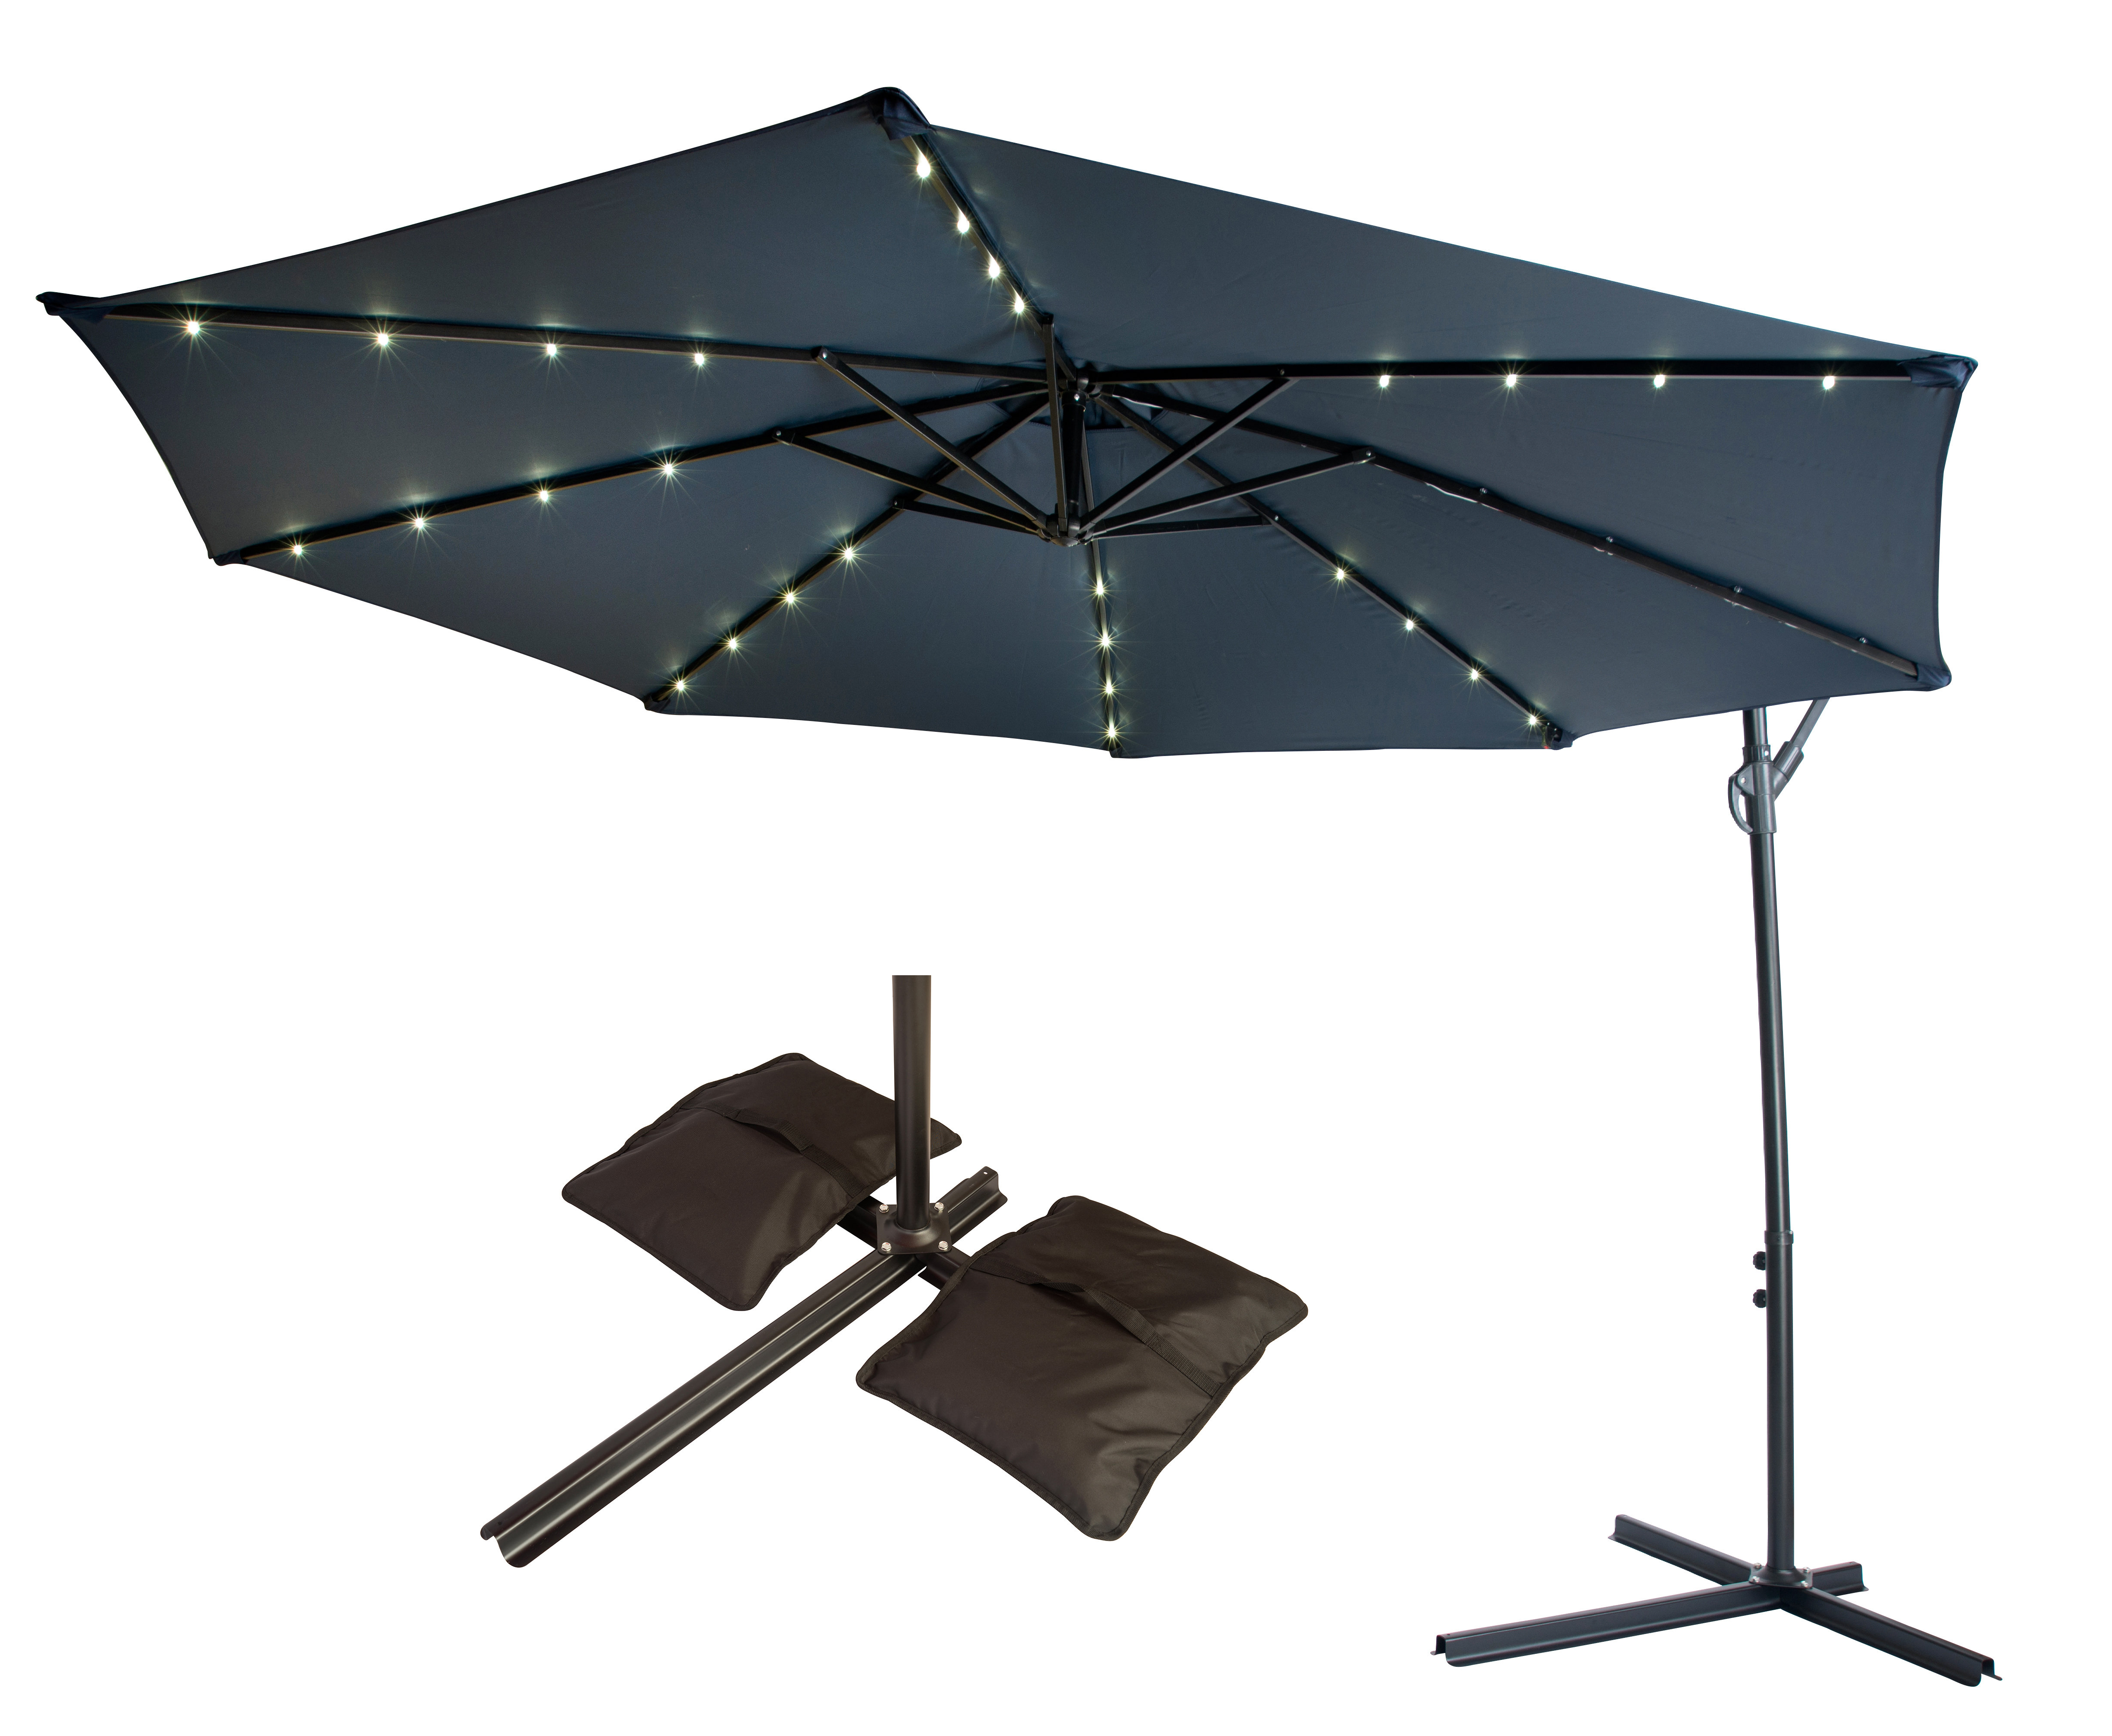 10' Cantilever Umbrella Regarding Well Liked Trotman Cantilever Umbrellas (View 10 of 20)